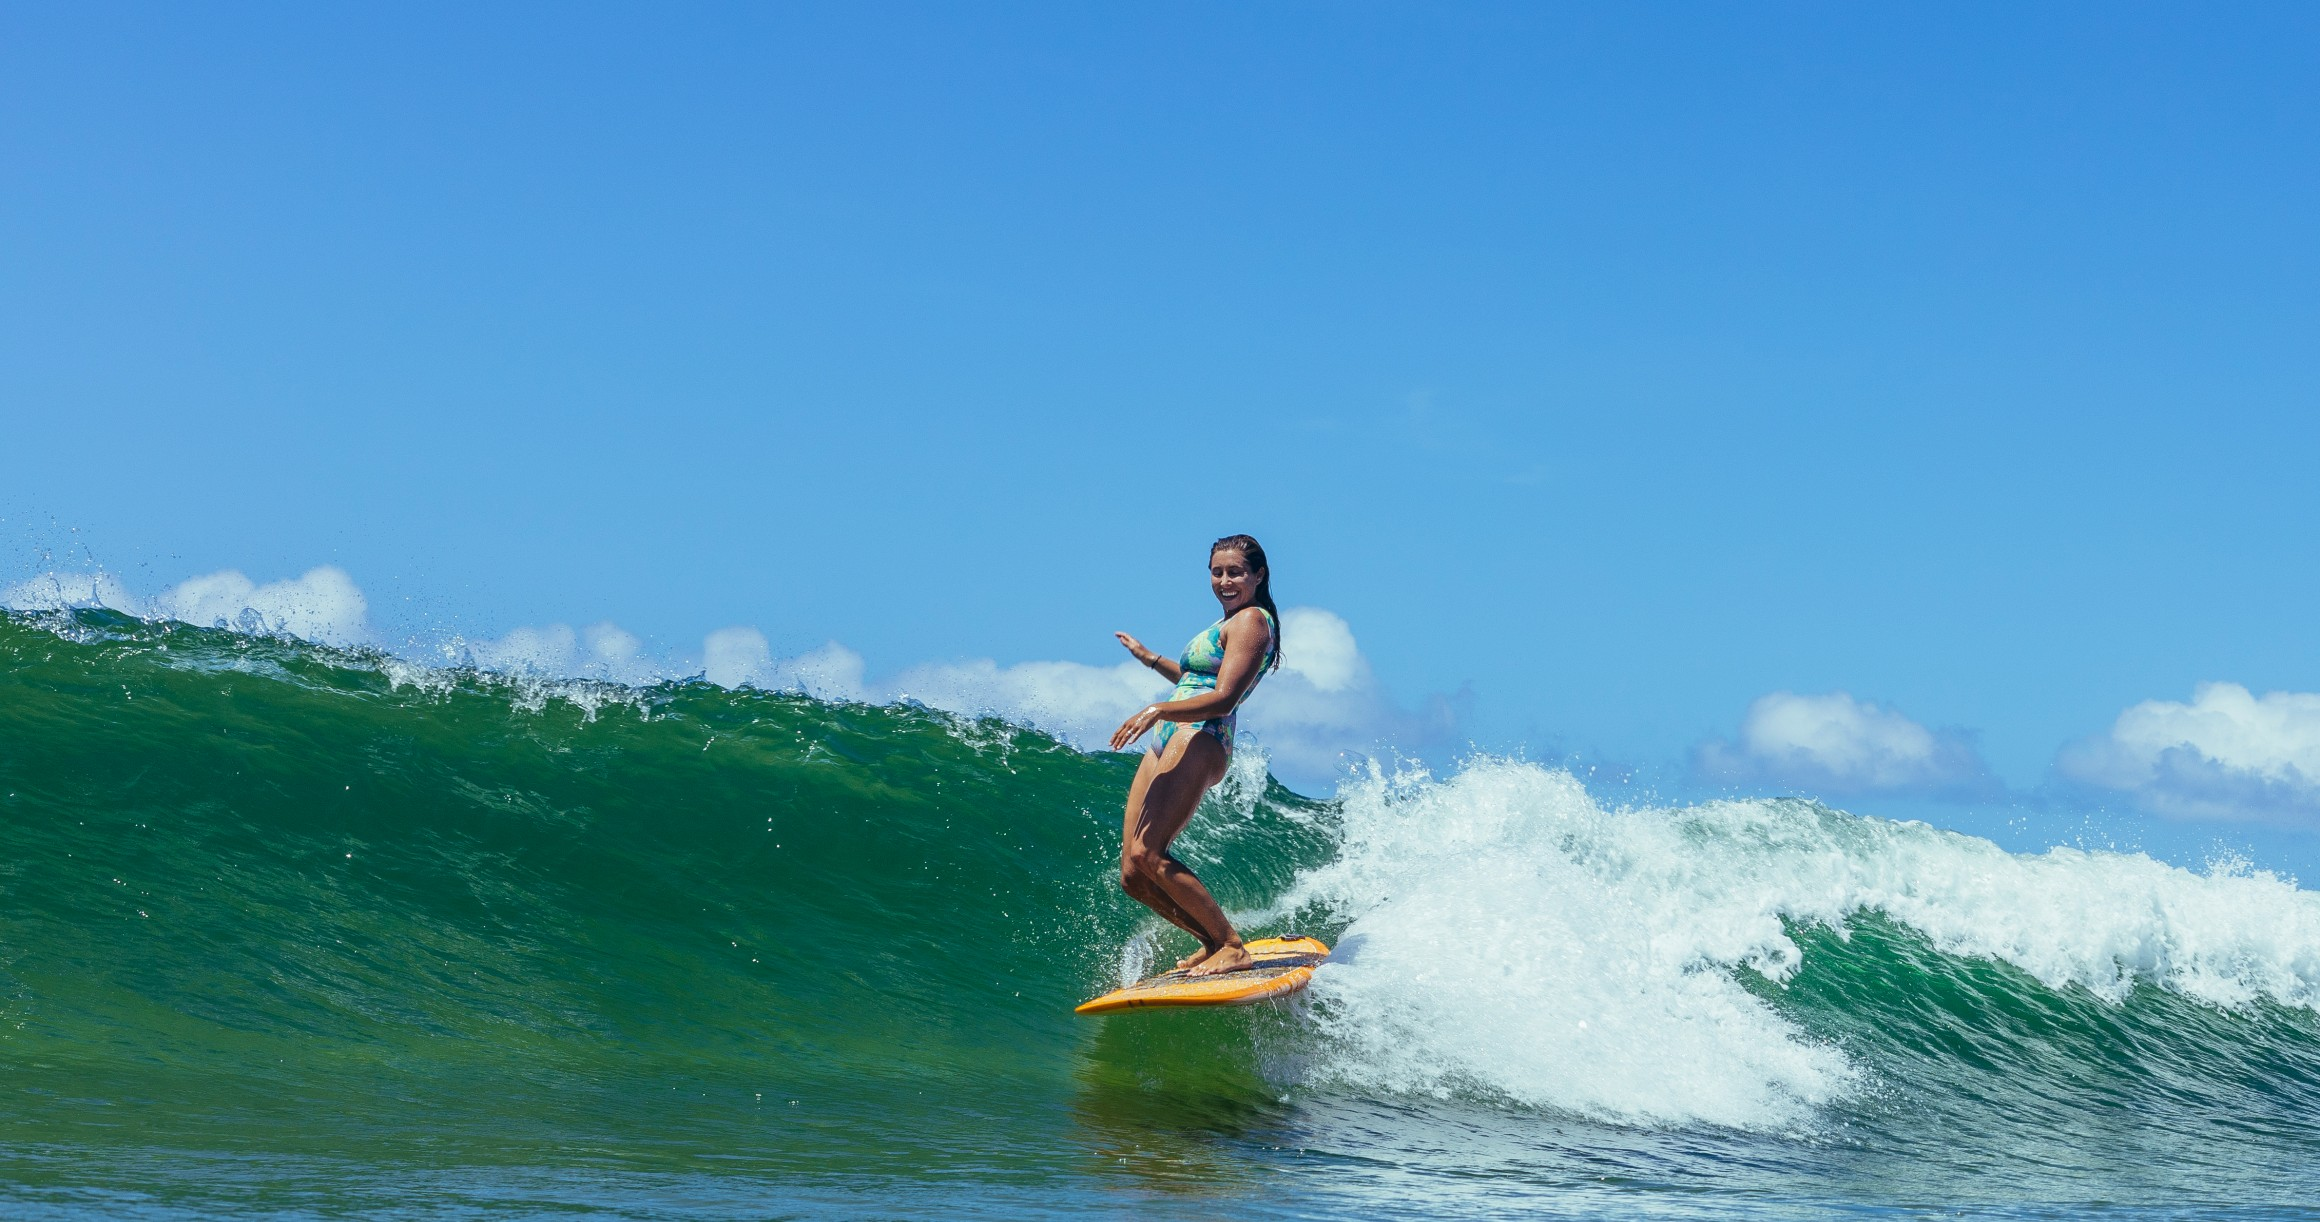 She Surf: Lauren Hill Explores The Rise of Female Surfing - Magicseaweed.com